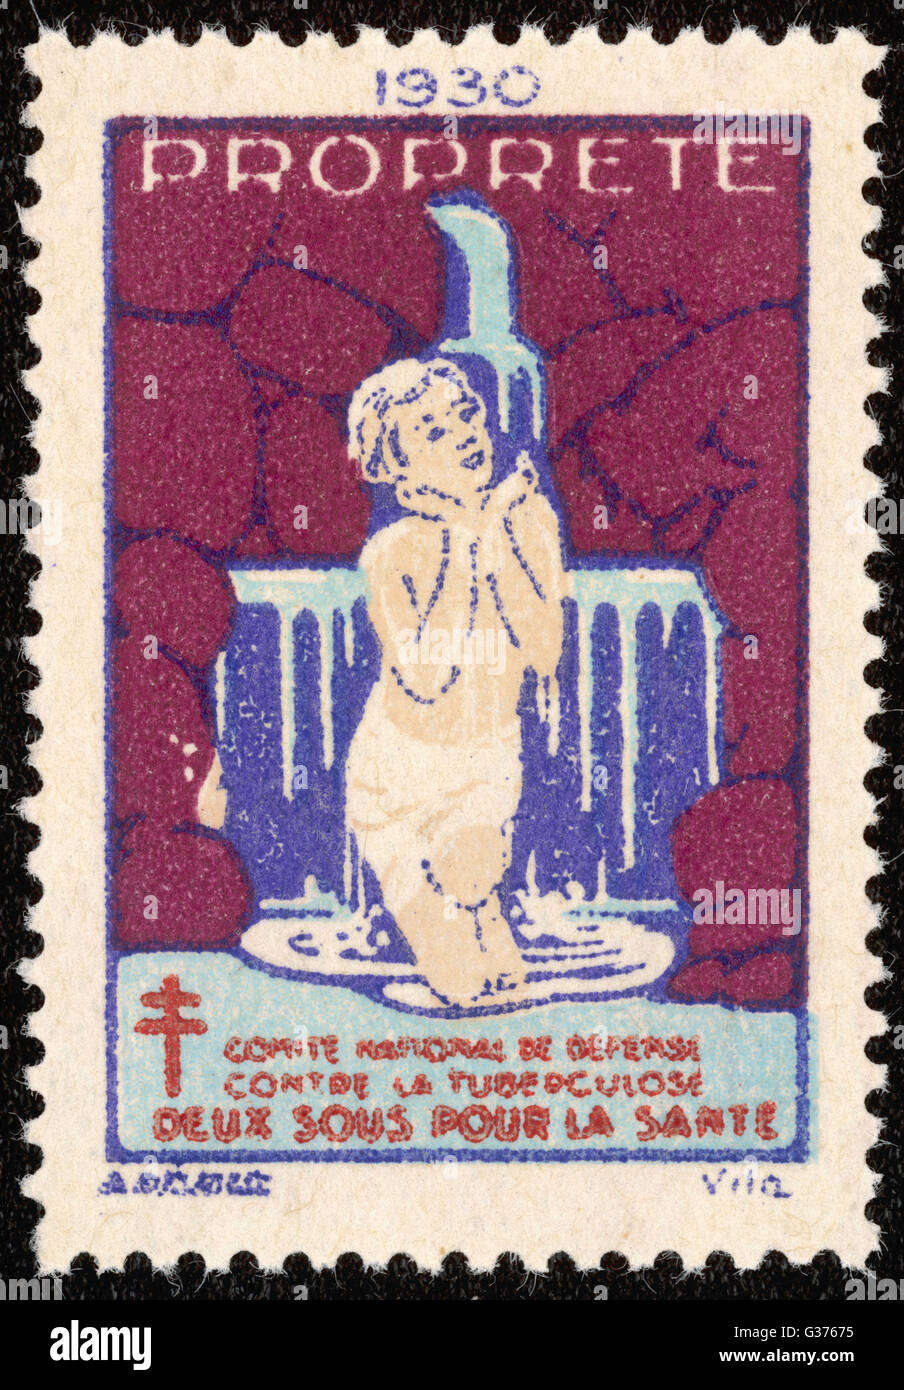 French postage stamp promoting  washing and cleanliness to  fight tuberculosis.        Date: 1938 - Stock Image